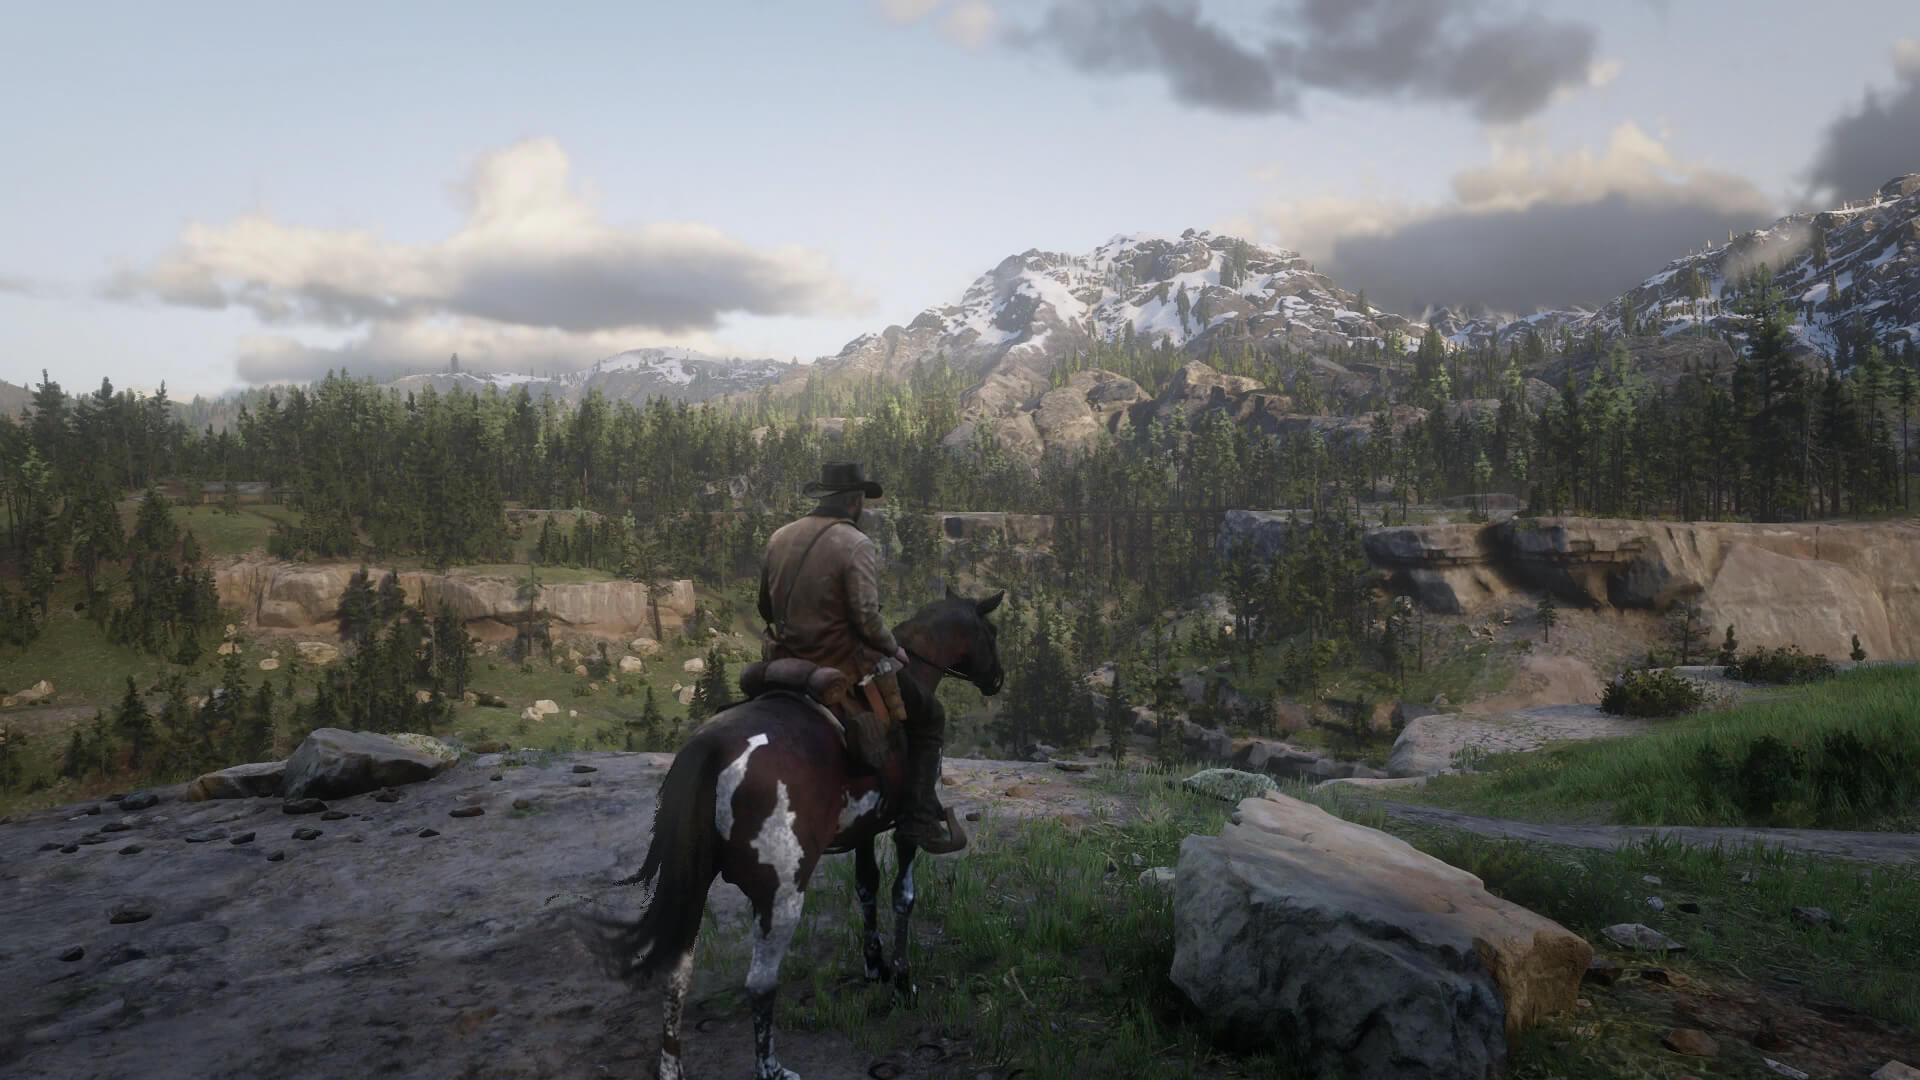 Red Dead Redemption 2 photo mode finally trots onto PS4